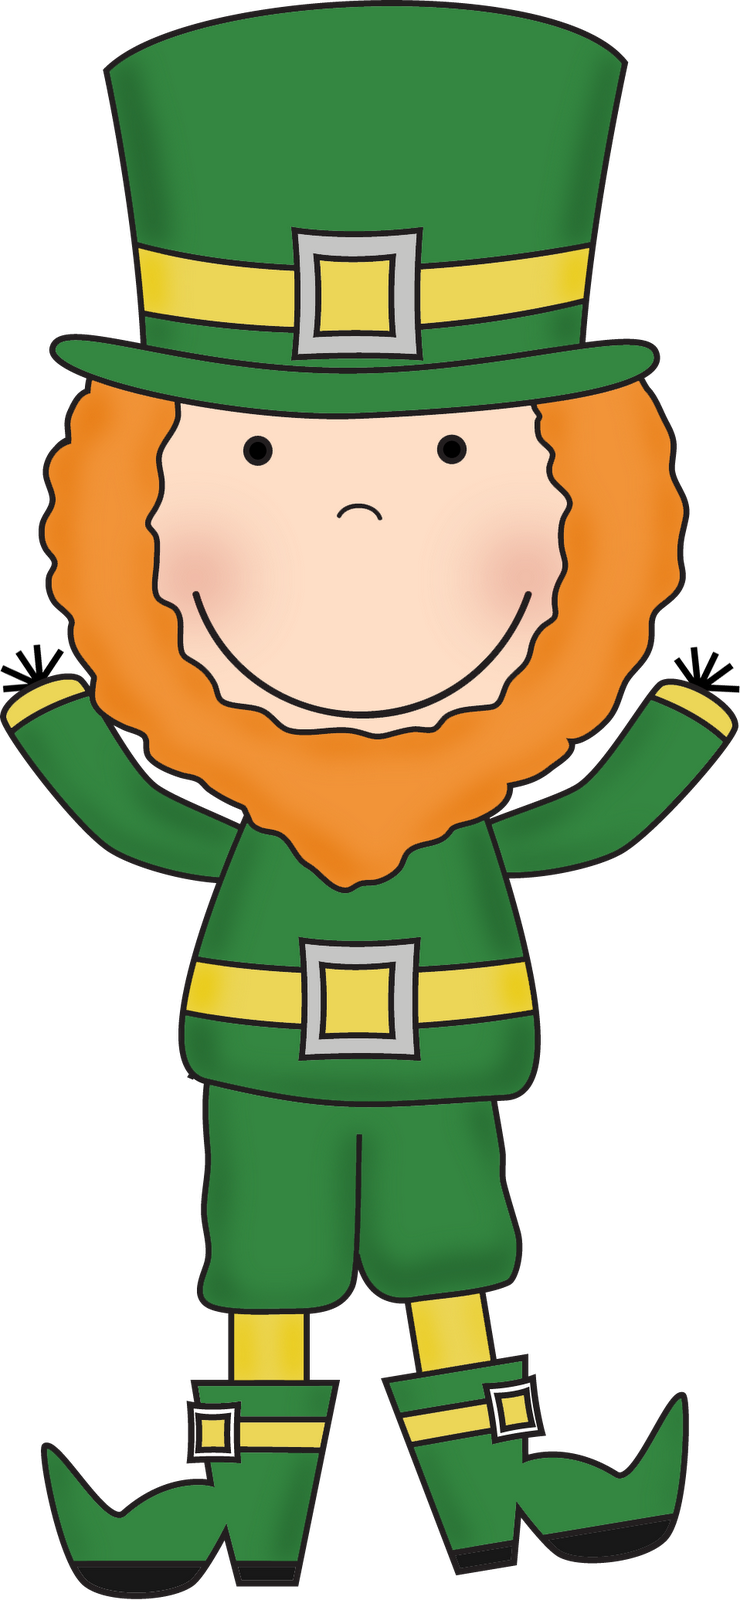 Leperchan with basketball clipart graphic royalty free 28+ Collection of Cute Leprechaun Clipart | High quality, free ... graphic royalty free